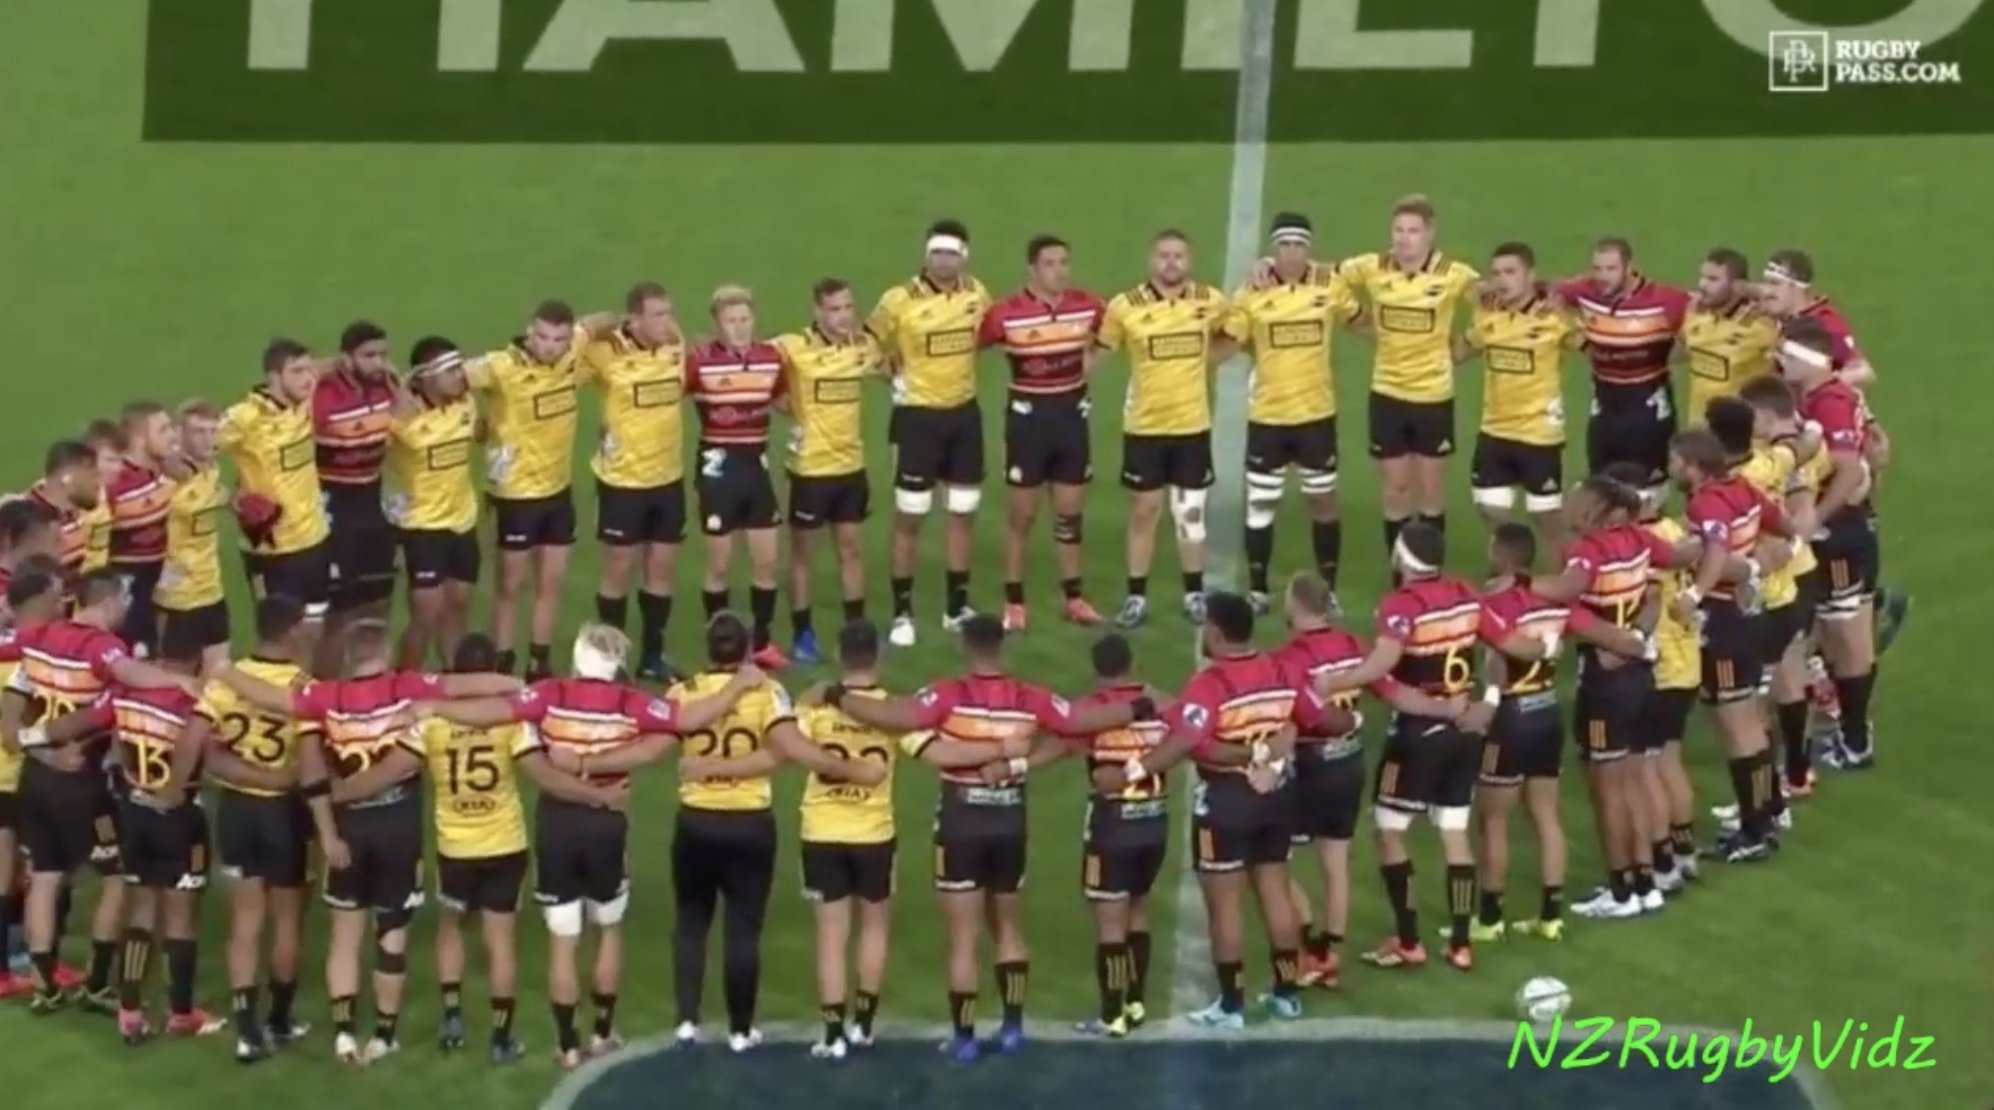 WATCH: Touching moment as both teams unite to remember tragedy in Christchurch